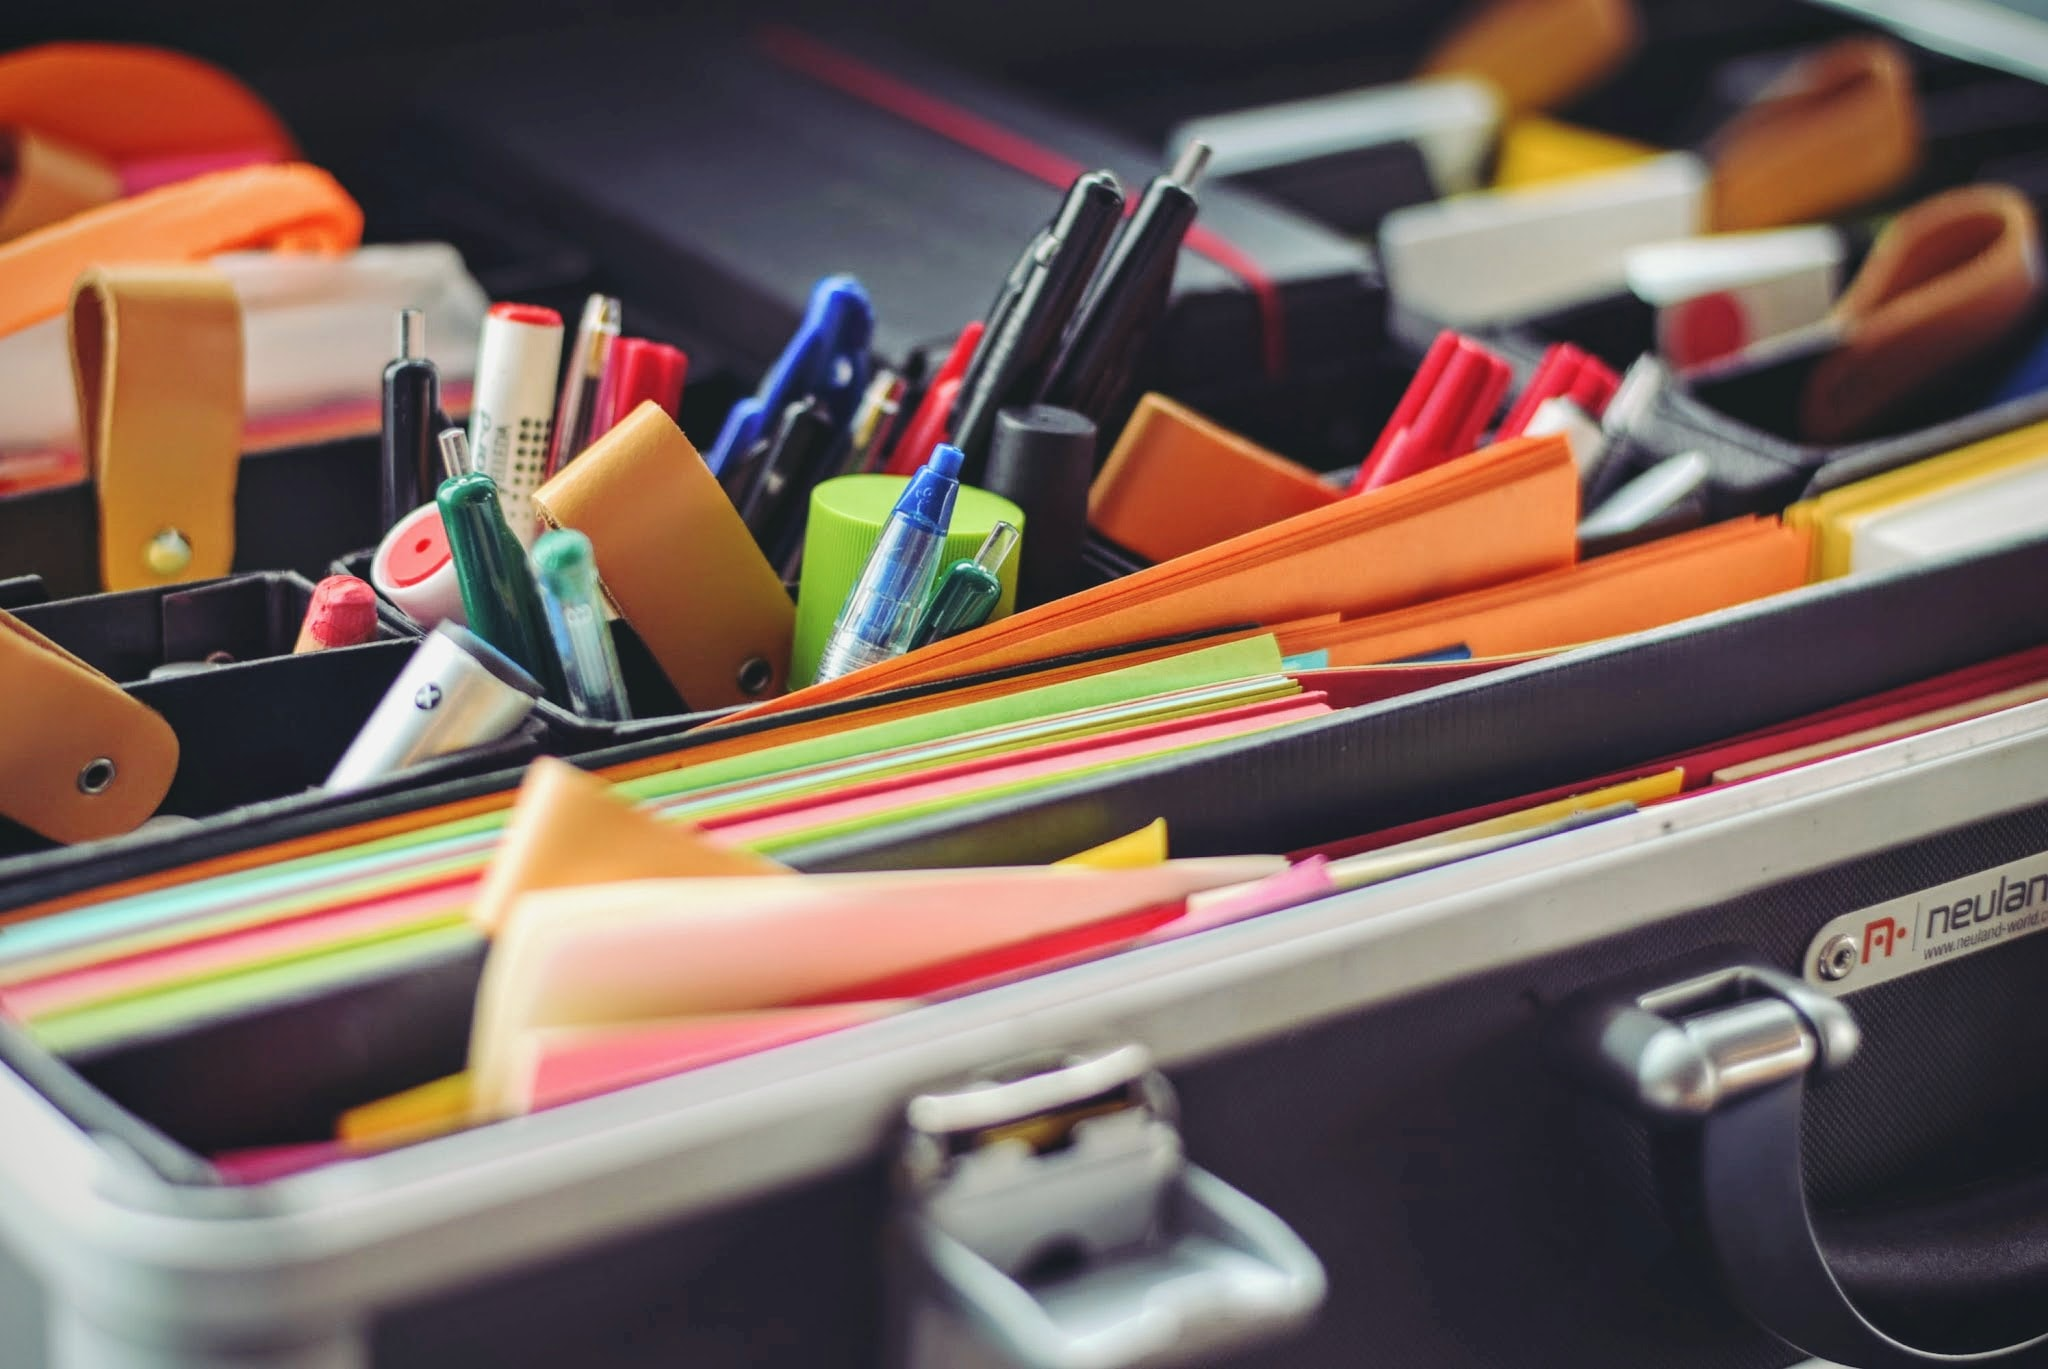 Office supplies neatly organized in several compartments